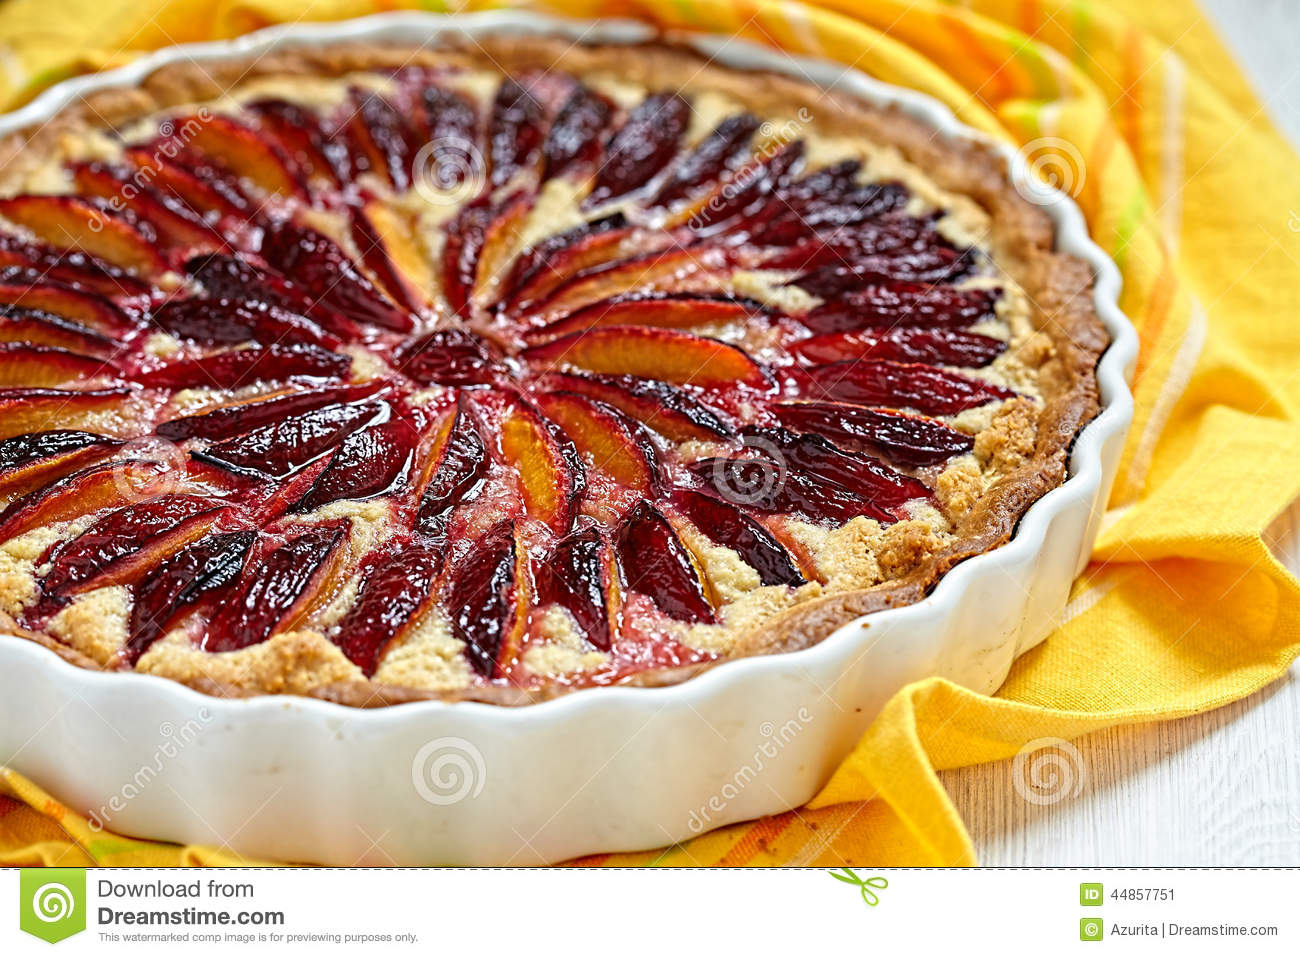 Download Plum and Almond Tart stock image. Image of cooking, homemade - 44857751